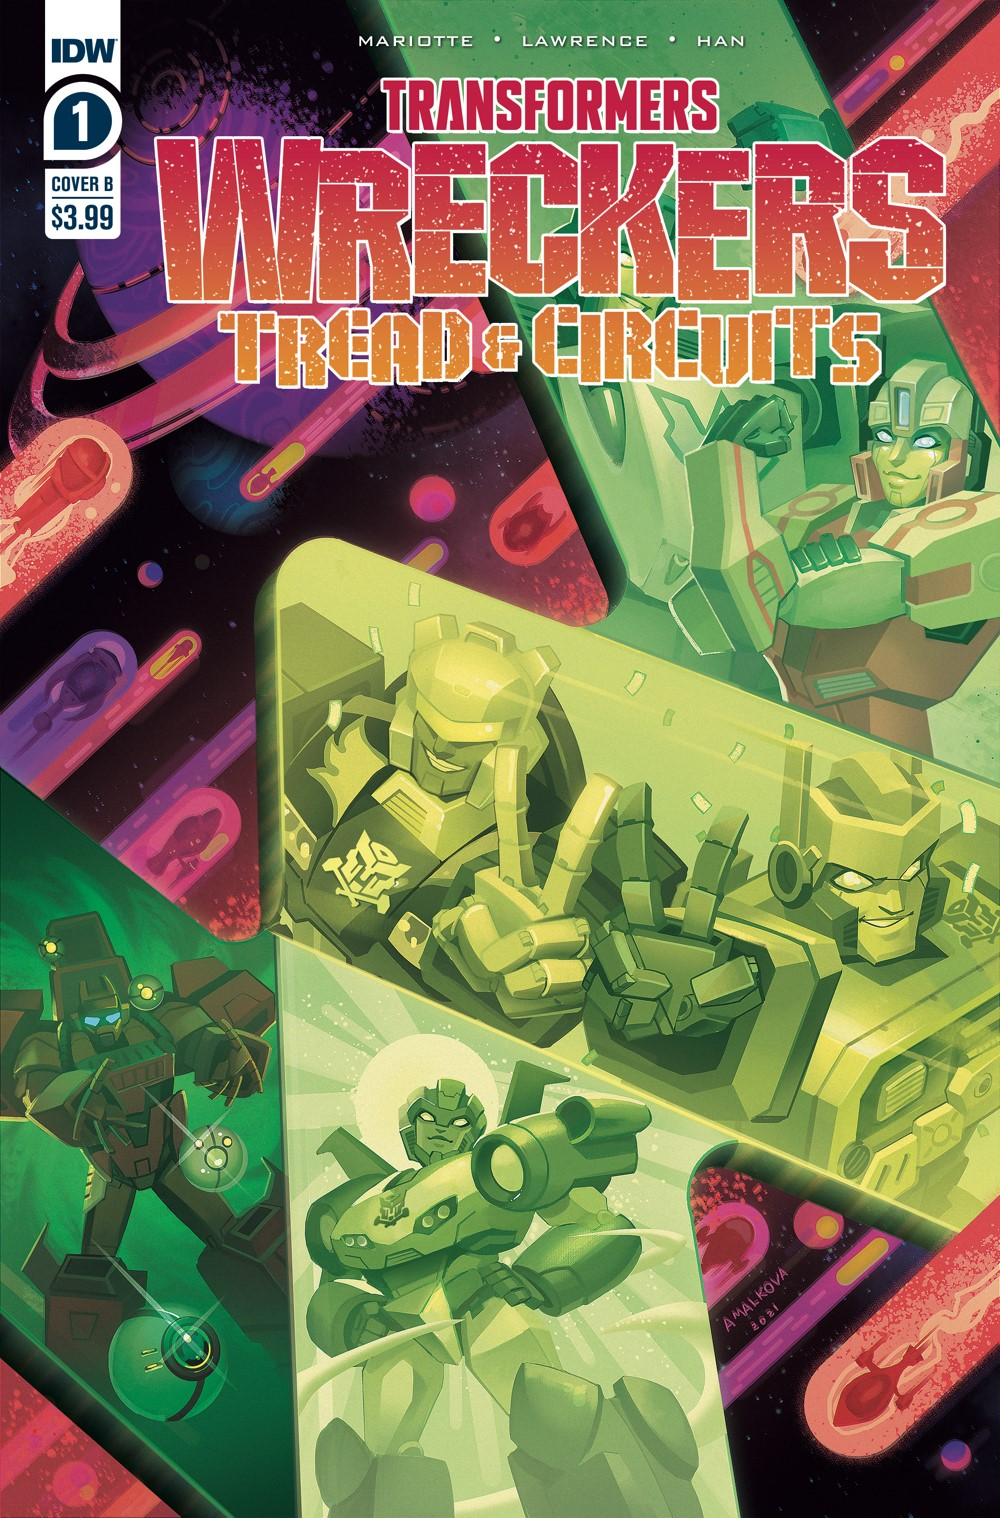 TF-Wreckers-TnC01_cvrB ComicList: IDW Publishing New Releases for 10/13/2021